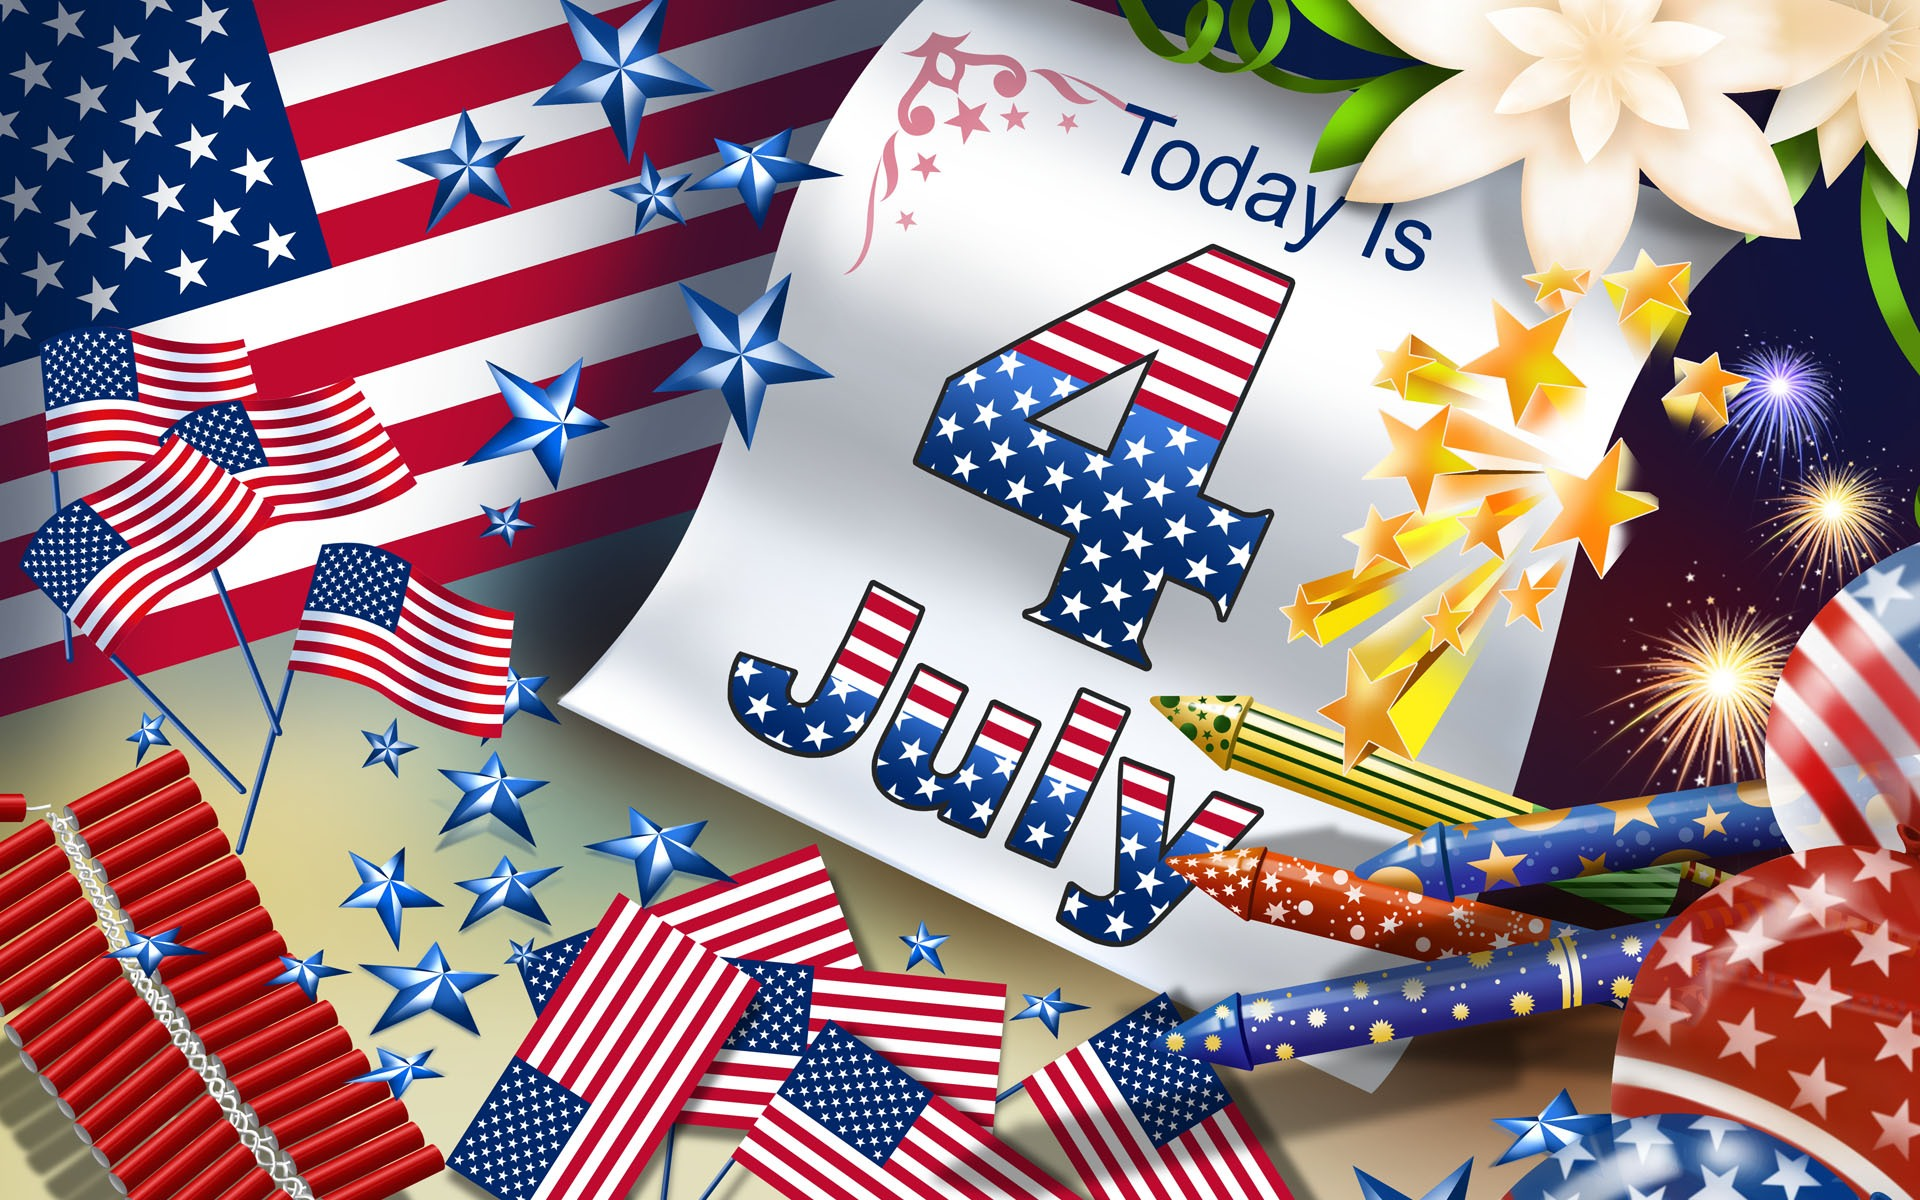 Happy 4th Of July computer desktop wallpapers pictures images 1920x1200